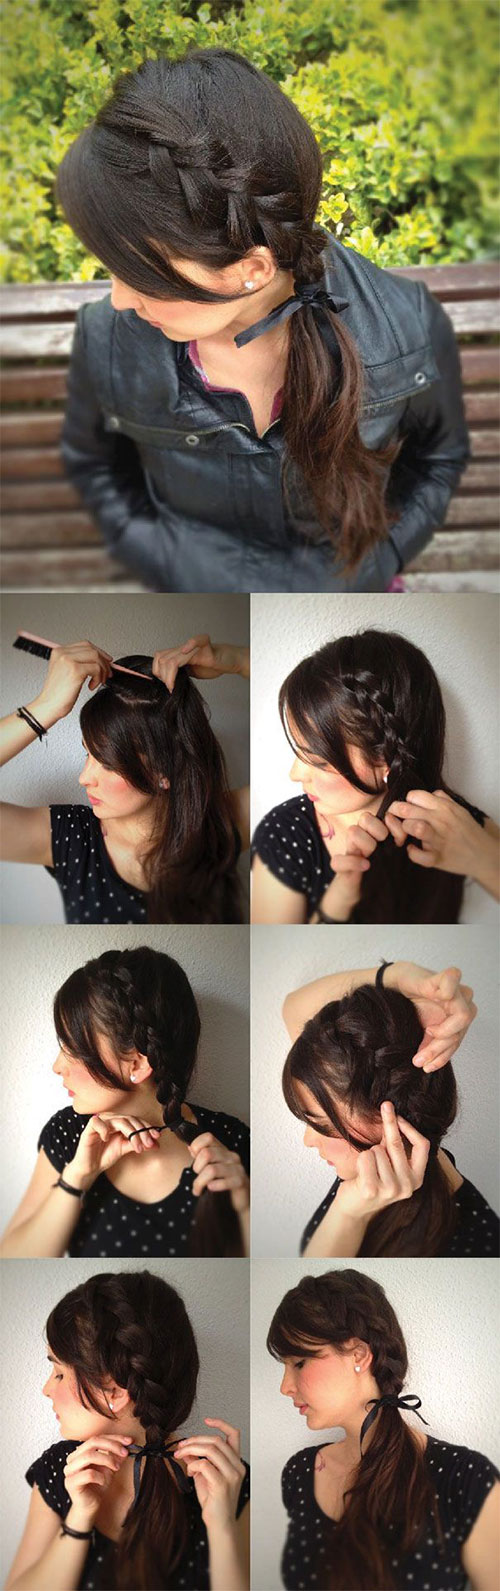 Simple Step By Step Winter Hairstyle Tutorials For